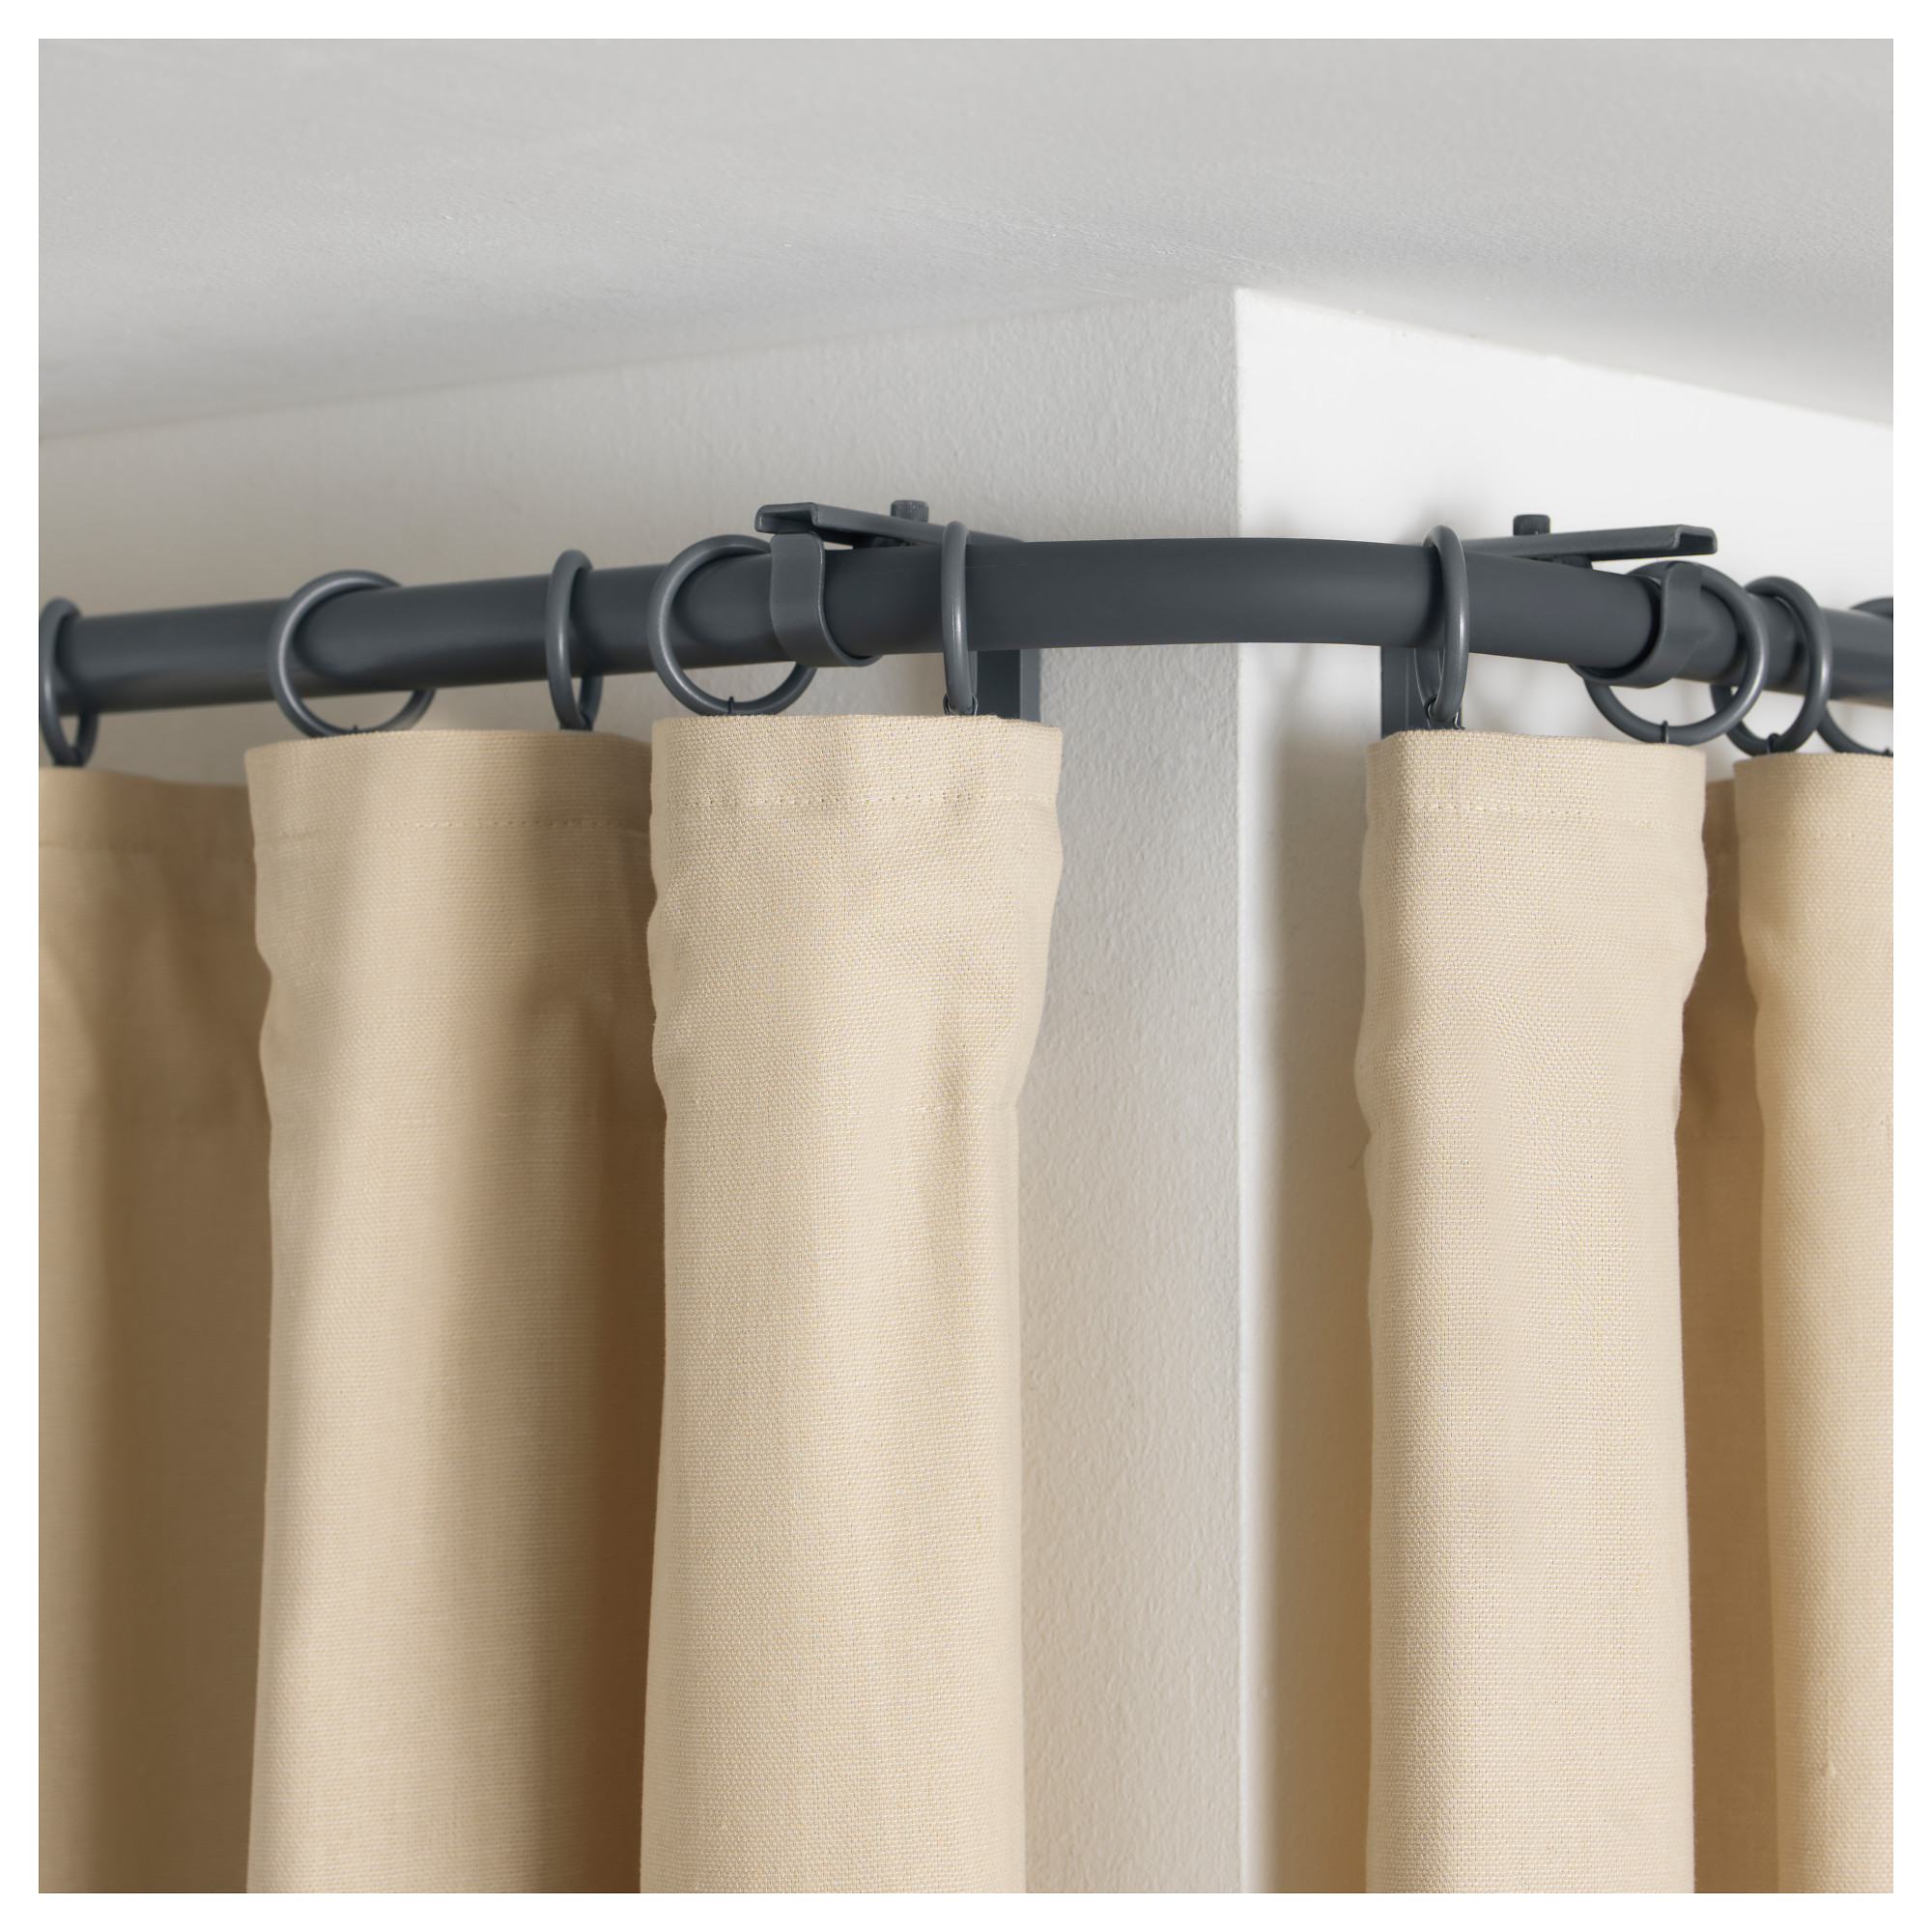 Curtain Rod Elbow | Drapery Hardware | Curtain Rod Corner Connector